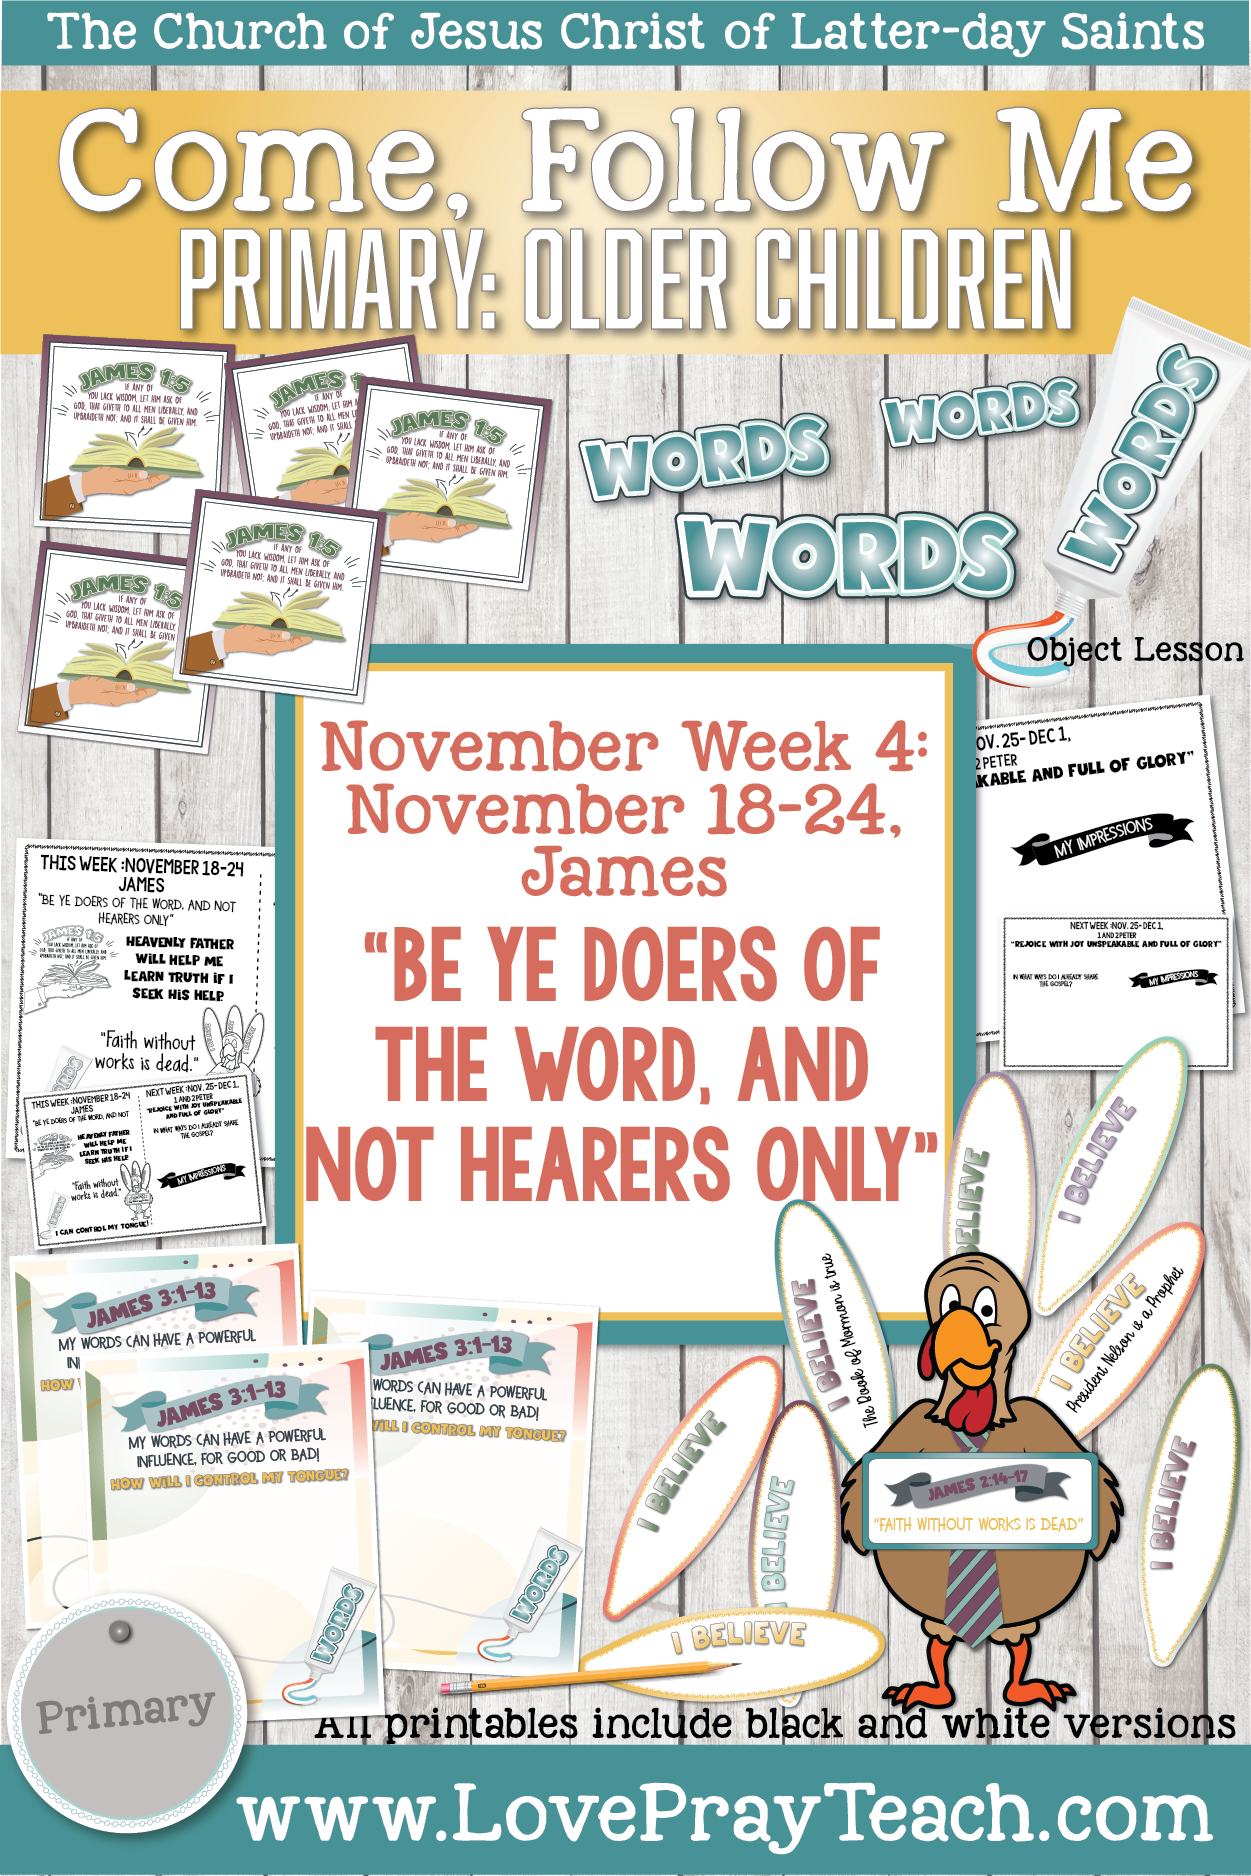 """Come, Follow Me for Primary 2019- New Testament, November Week 4: November 18-24, James; """"Be Ye Doers Of The Word, And Not Hearers Only"""" OLDER CHILDREN"""